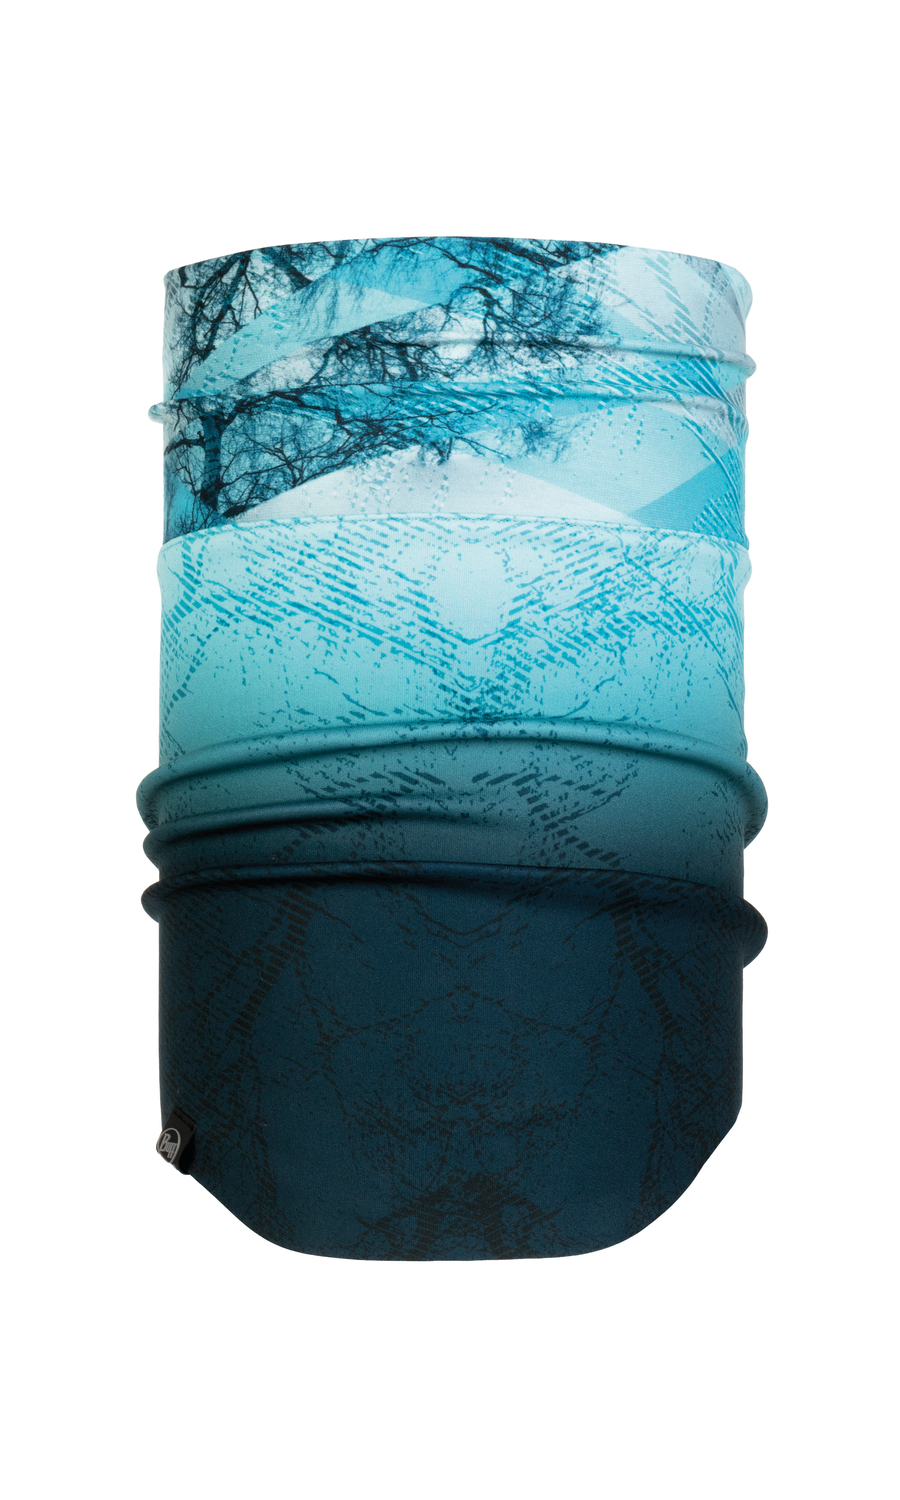 Купить Бандана BUFF WINDPROOF NECKWARMER MIST AQUA Банданы и шарфы Buff ® 1378058